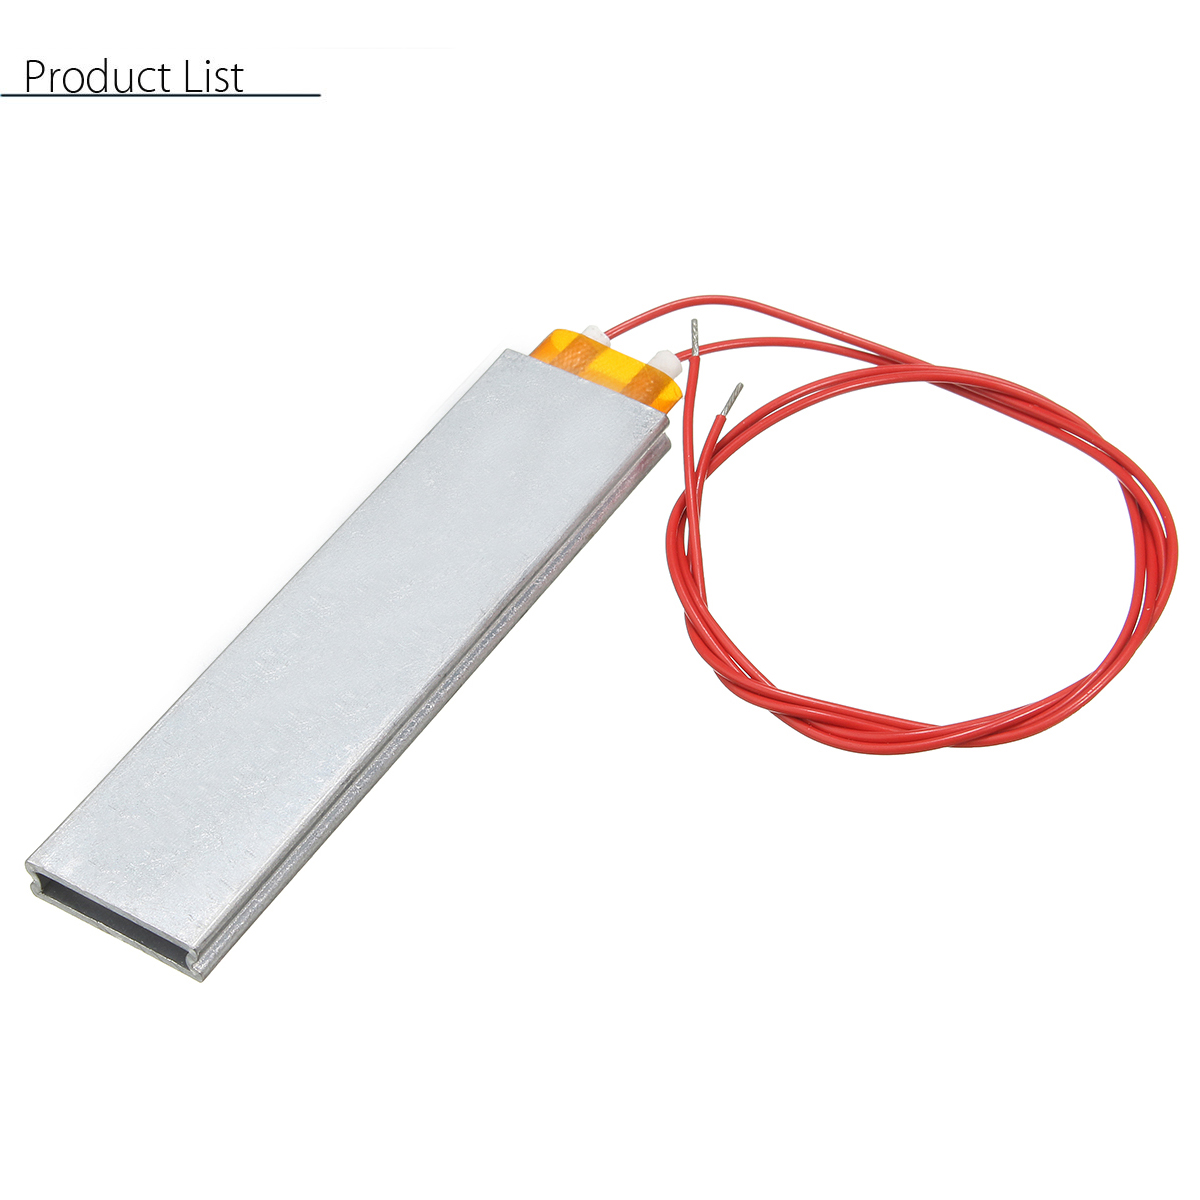 110V 80W Incubator Heating Element Replacement Part For 48/56 Egg Incubator